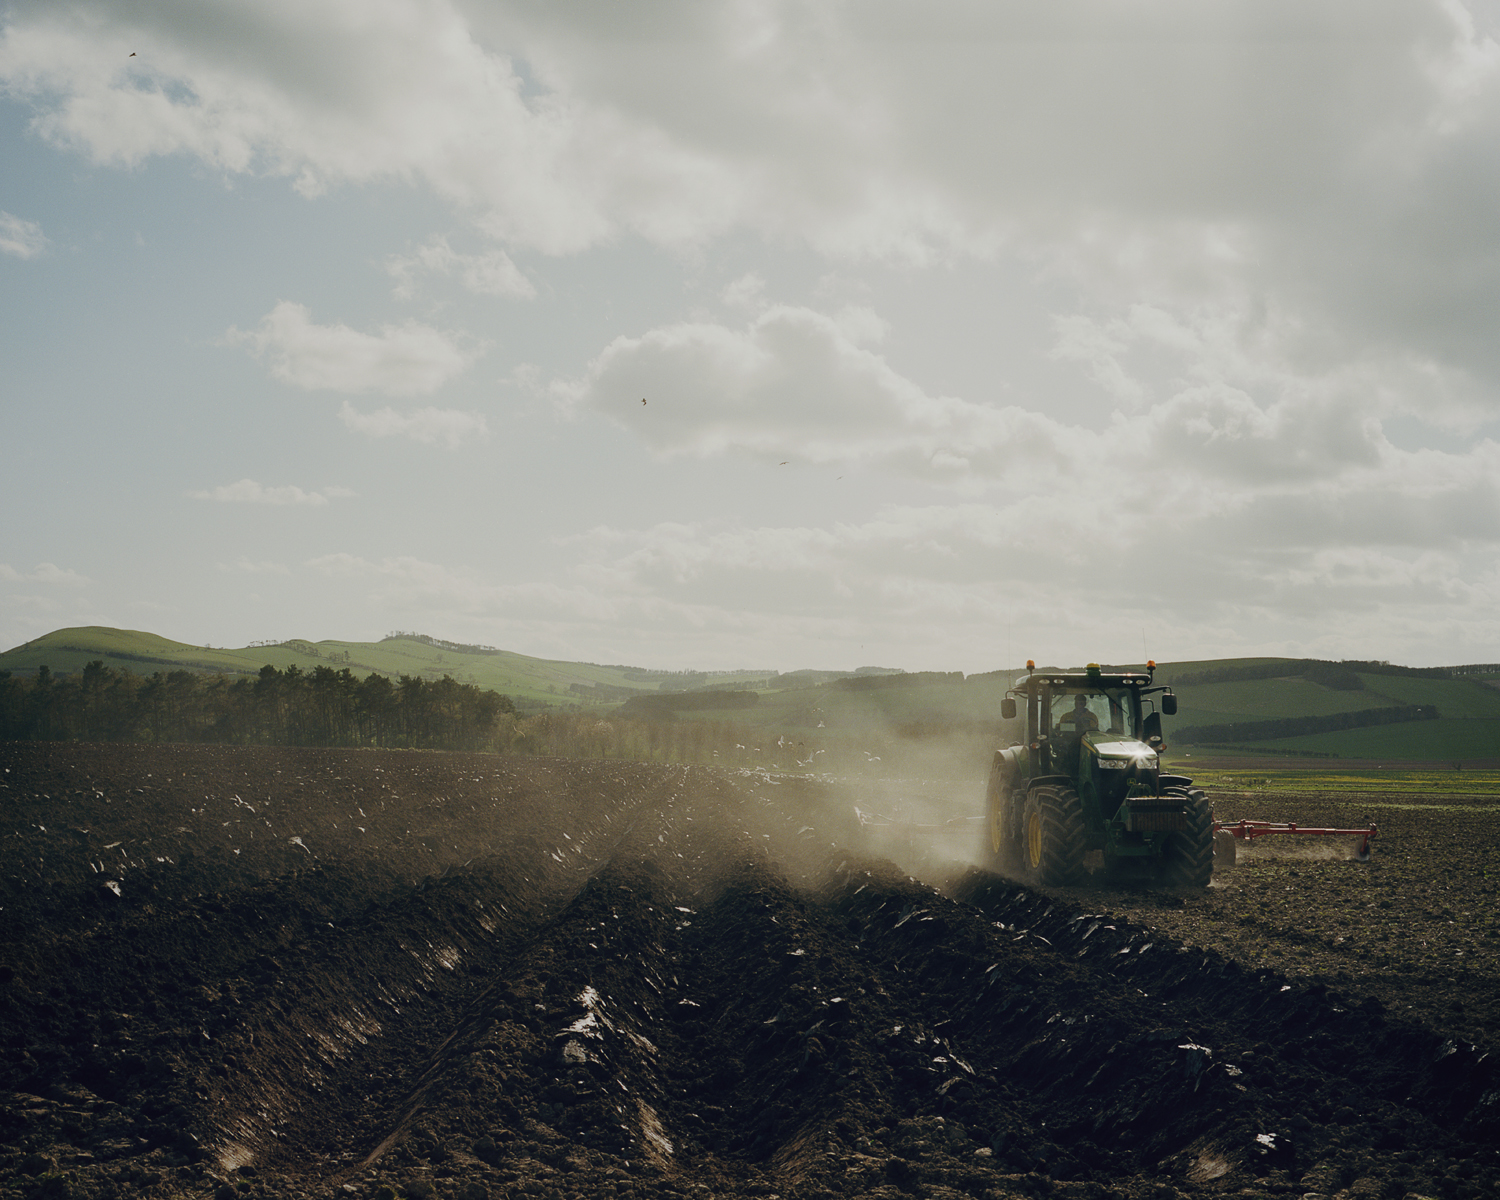 A farmer ploughing the land, Northumberland, England